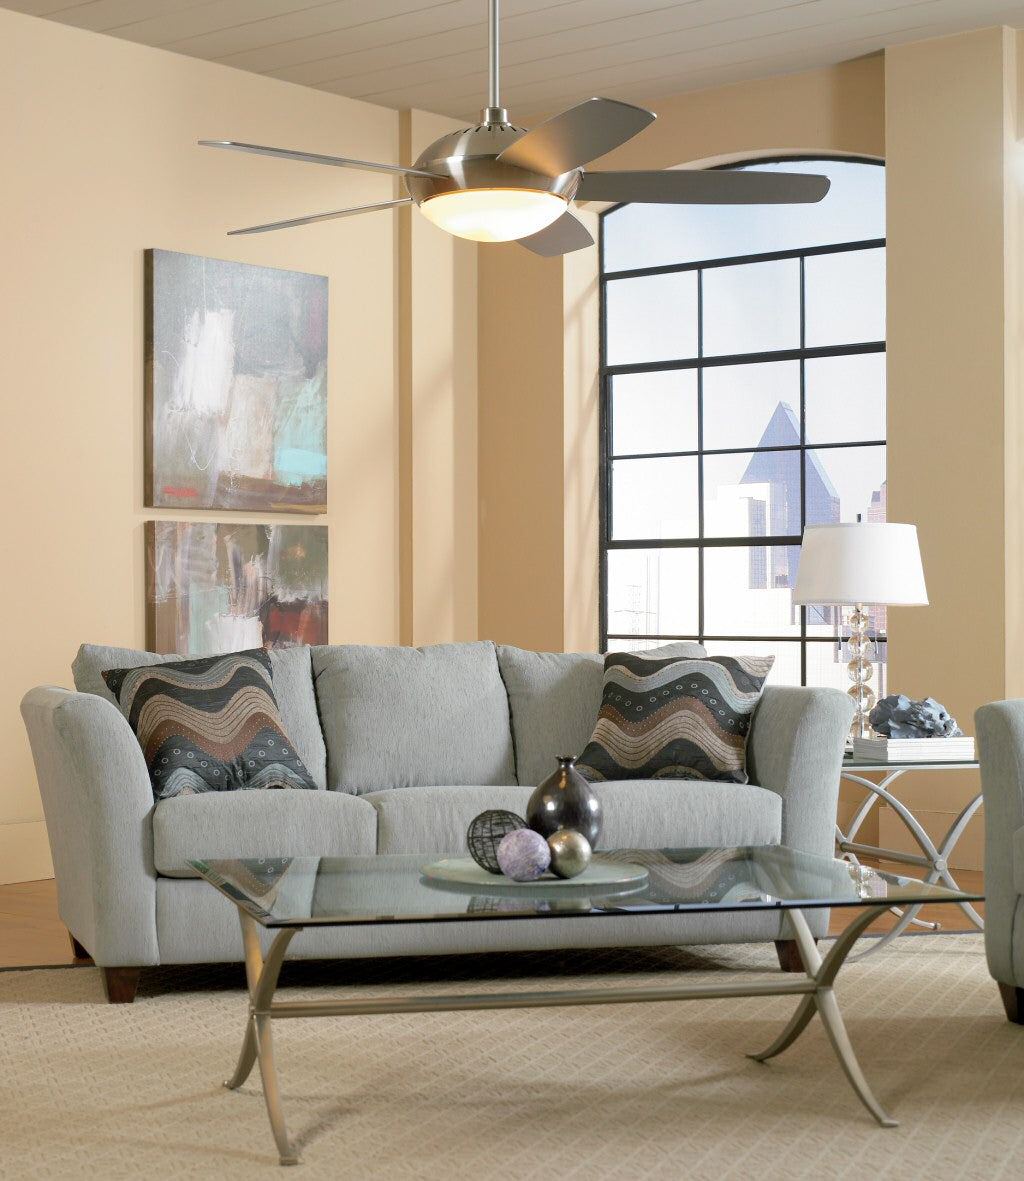 Living Room Lighting 20 Powerful Ideas To Improve Your